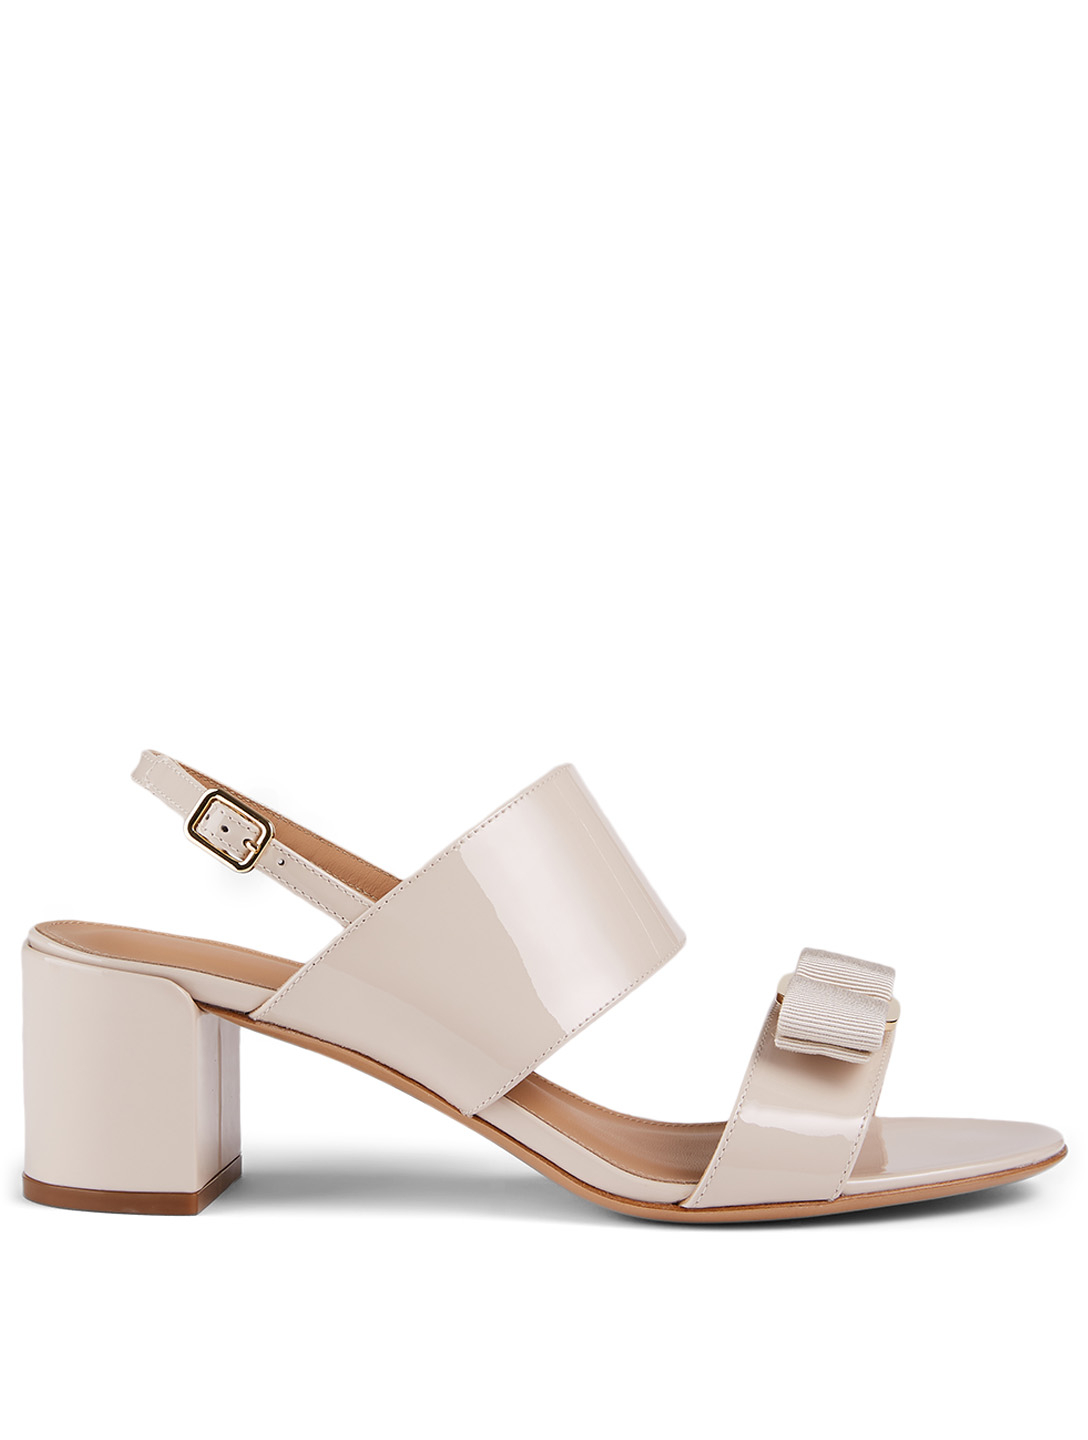 SALVATORE FERRAGAMO Giulia Patent Leather Heeled Sandals Women's White